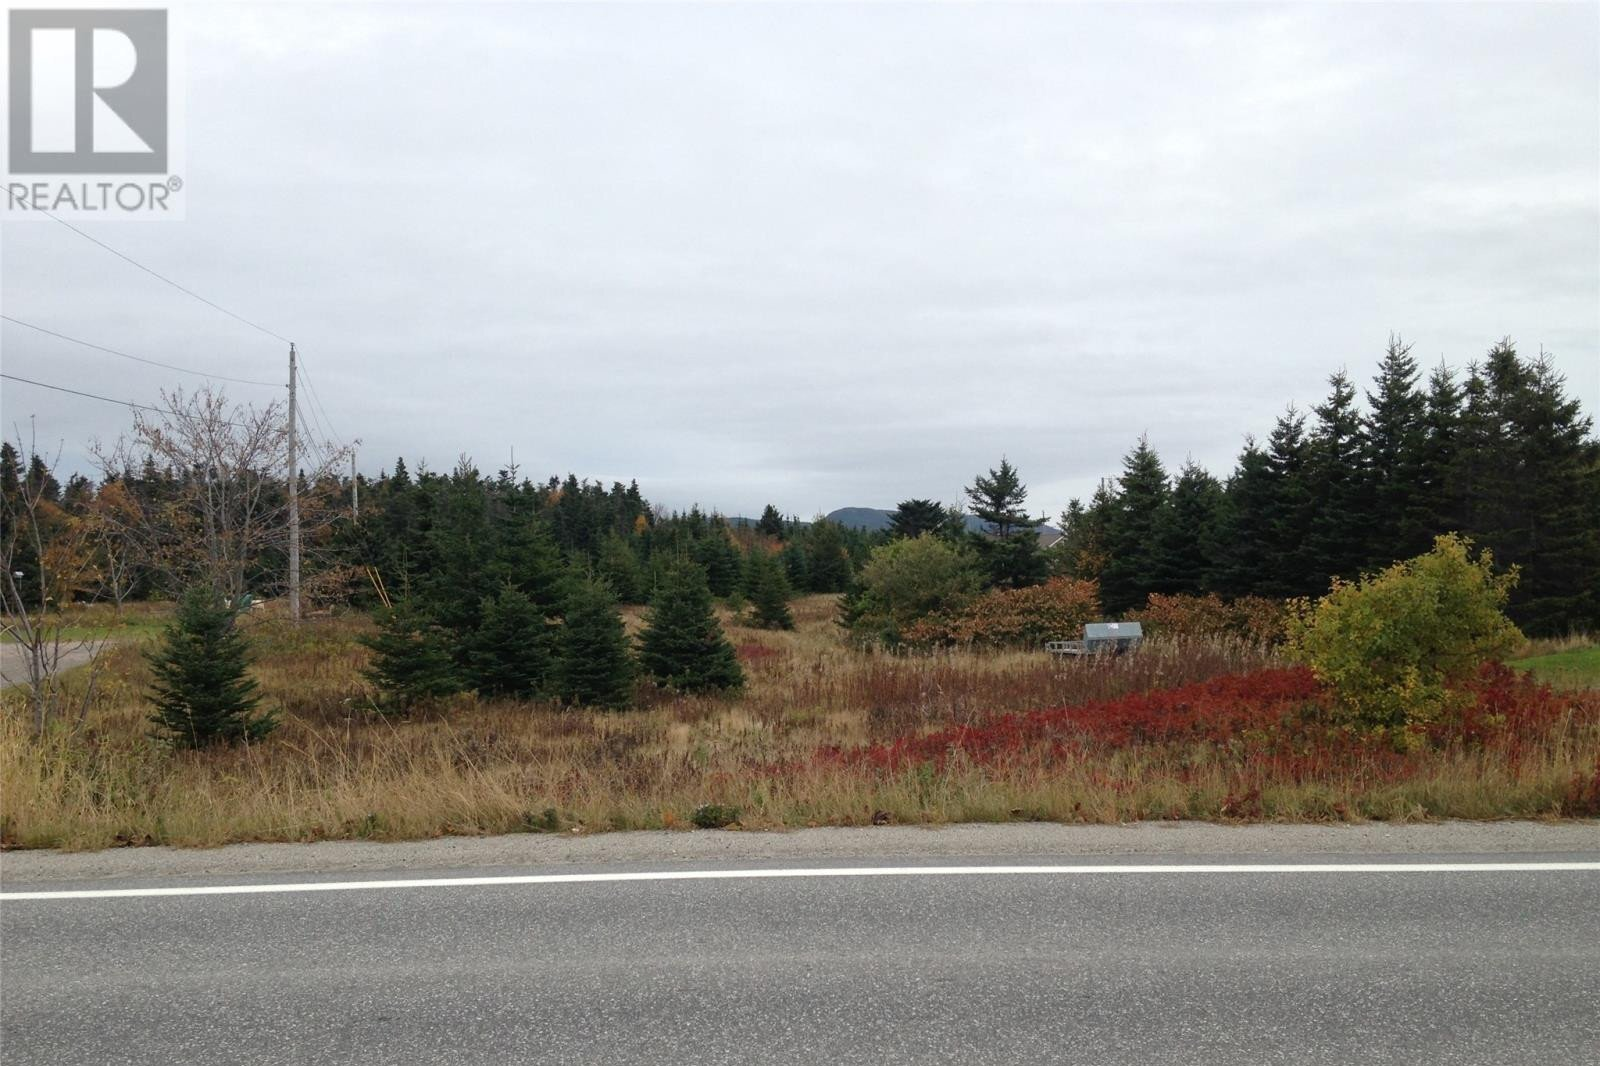 Residential property for sale at 148 Kippens Rd Kippens Newfoundland - MLS: 1201139